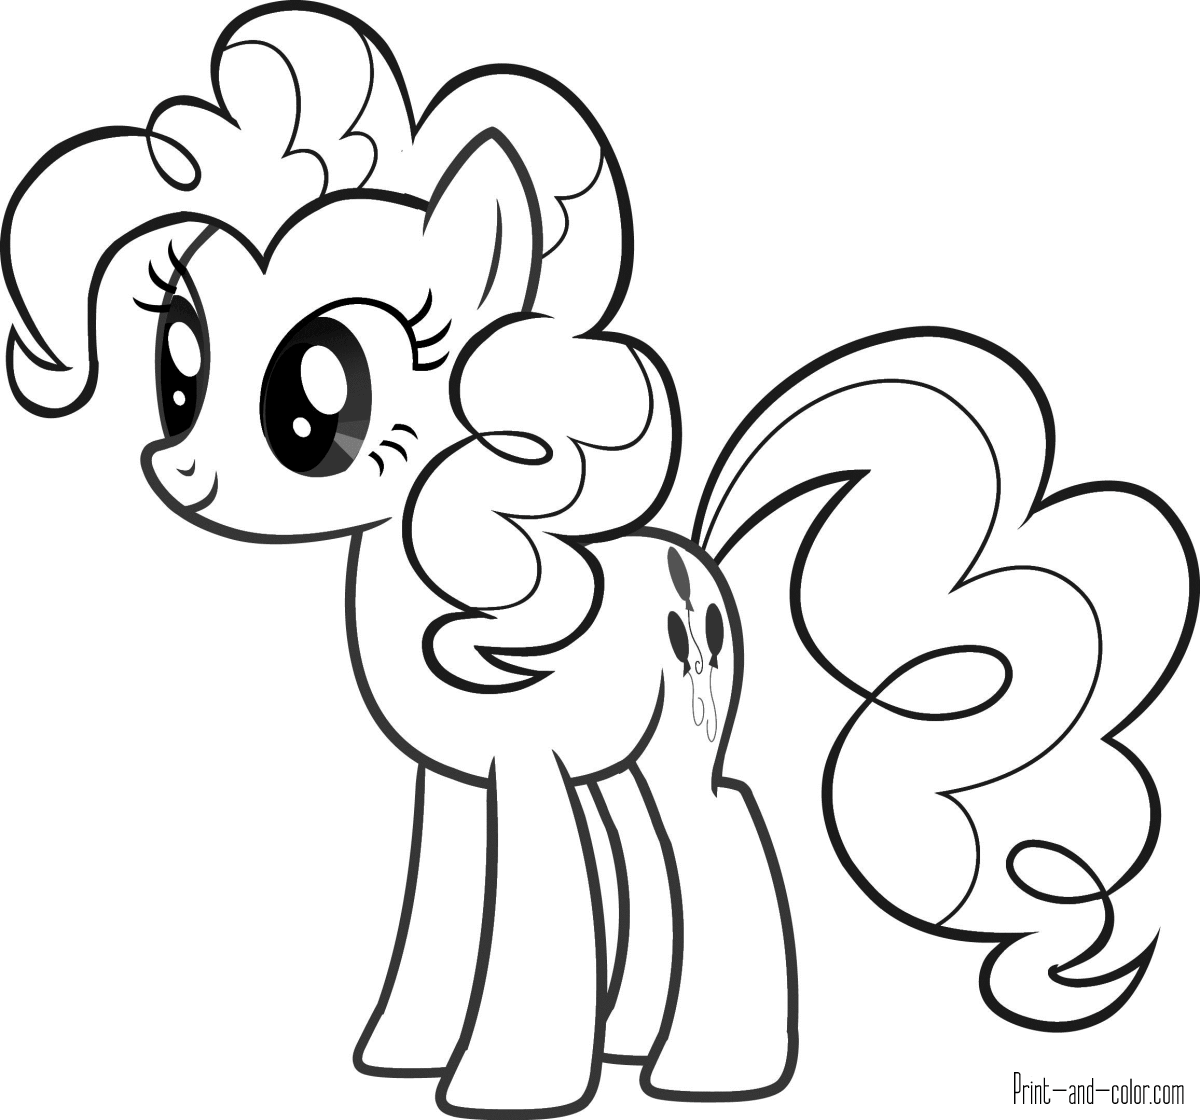 my little pony coloring sheets free printable my little pony coloring pages for kids my pony sheets coloring little